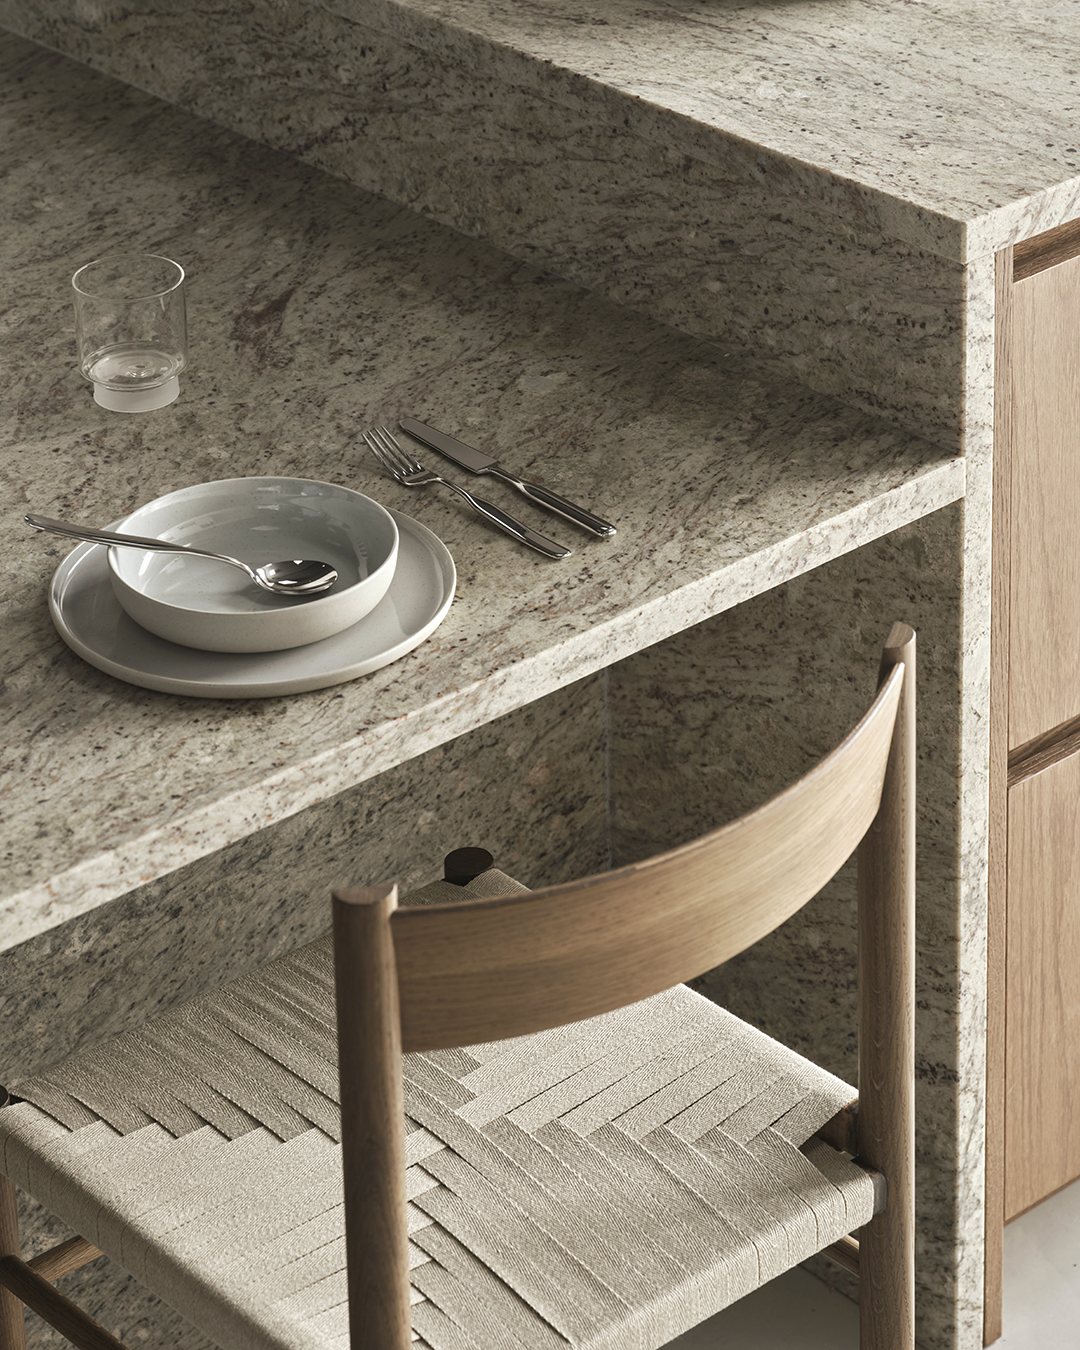 Split-level kitchen island unit with marble worktop and integrated dining area | Eight inspiring kitchen ideas from Nordiska Kök's new showroom | These Four Walls blog